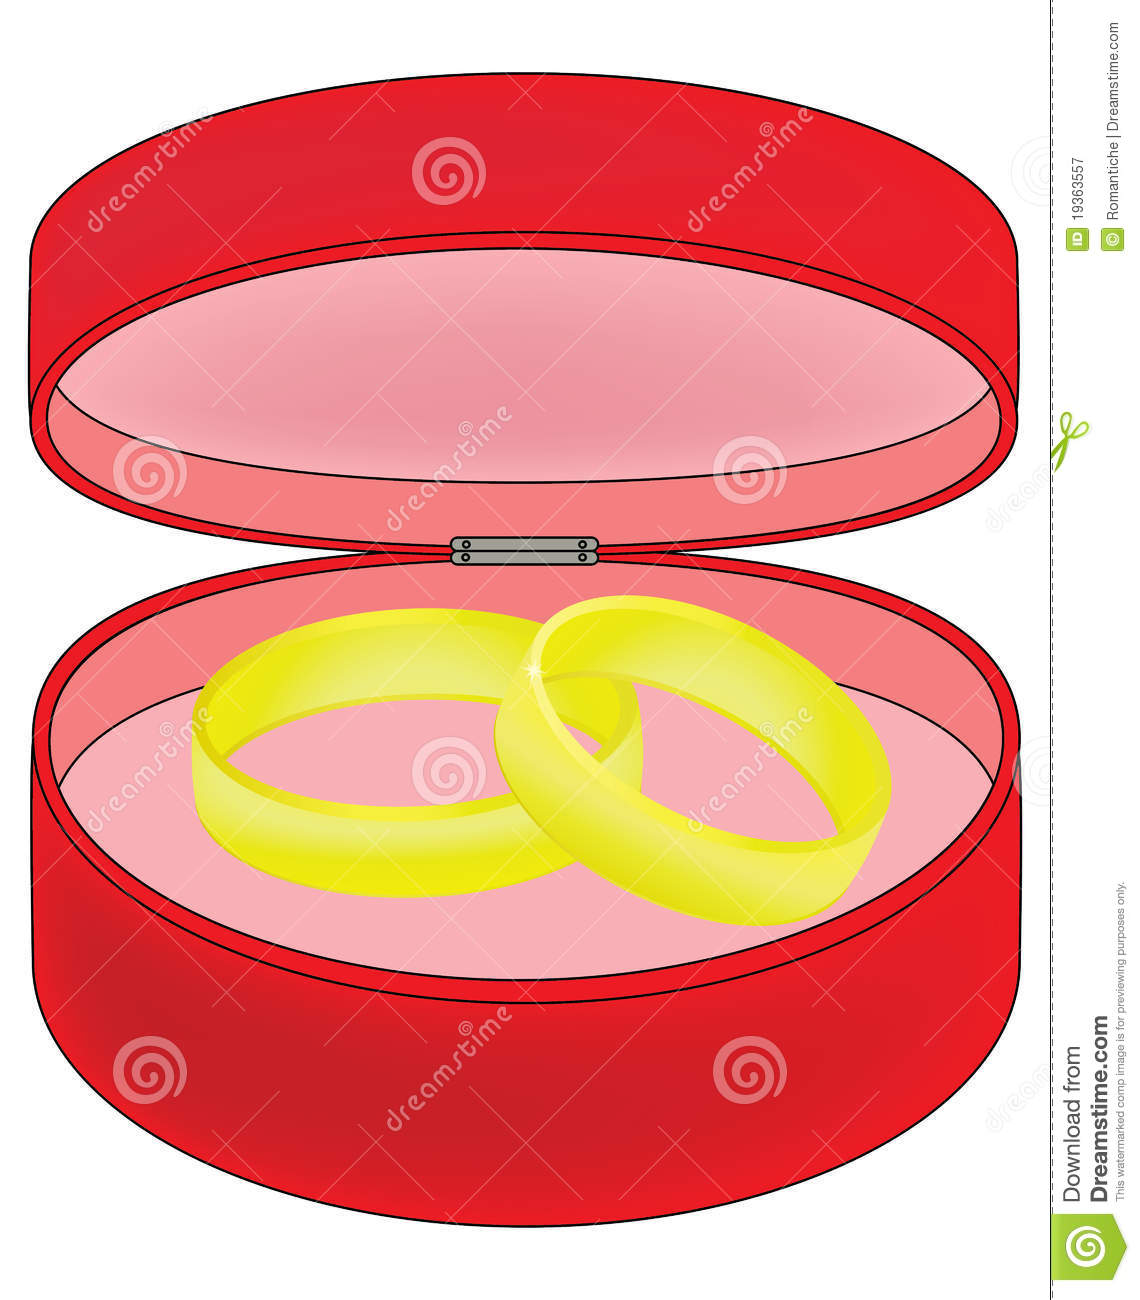 Two Wedding Rings In A Red Box Stock Vector - Illustration of event ...